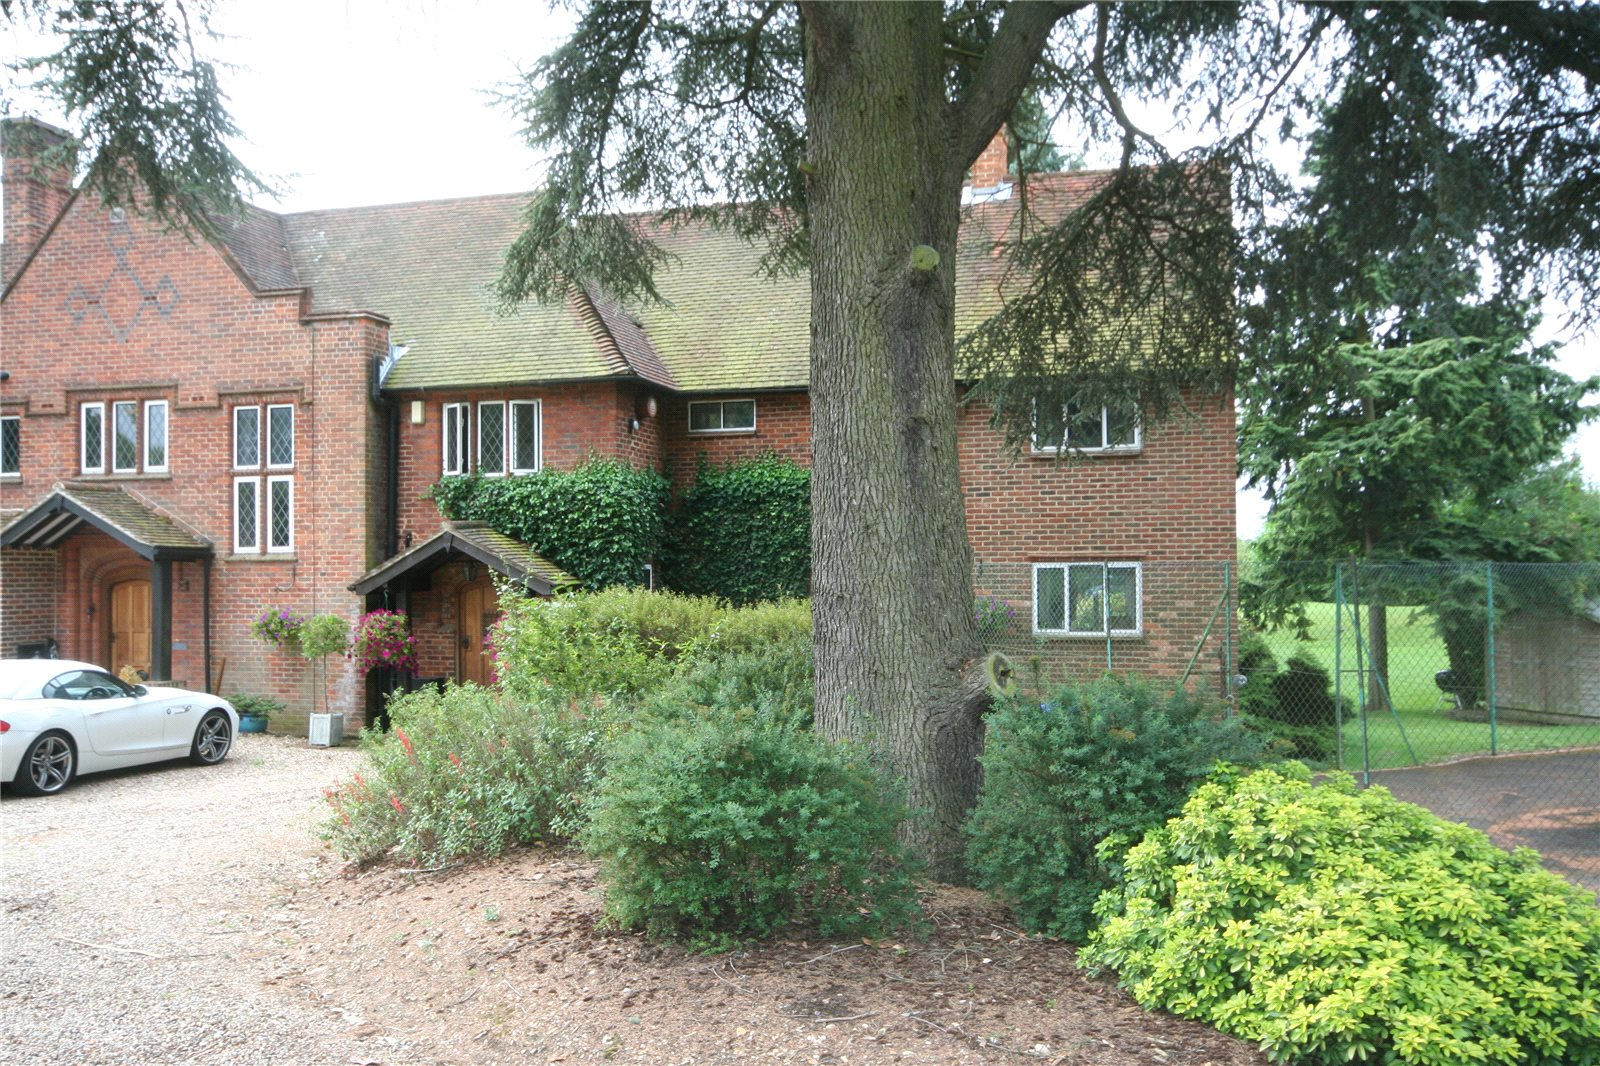 Additional photo for property listing at Fulmer Lane, Fulmer, Buckinghamshire, SL3 Fulmer, Inglaterra